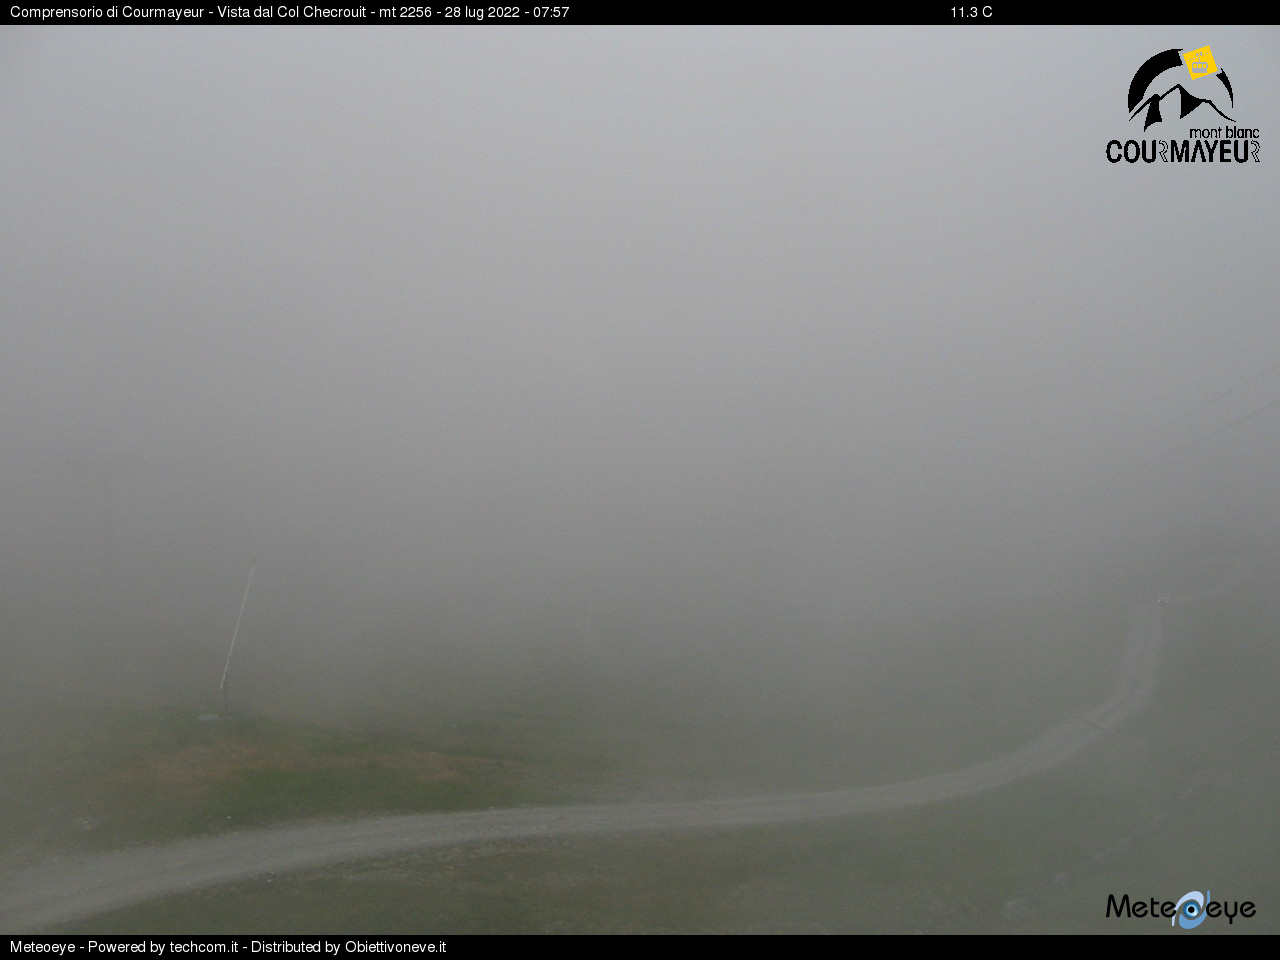 Webcam Col Checrouit - Courmayeur